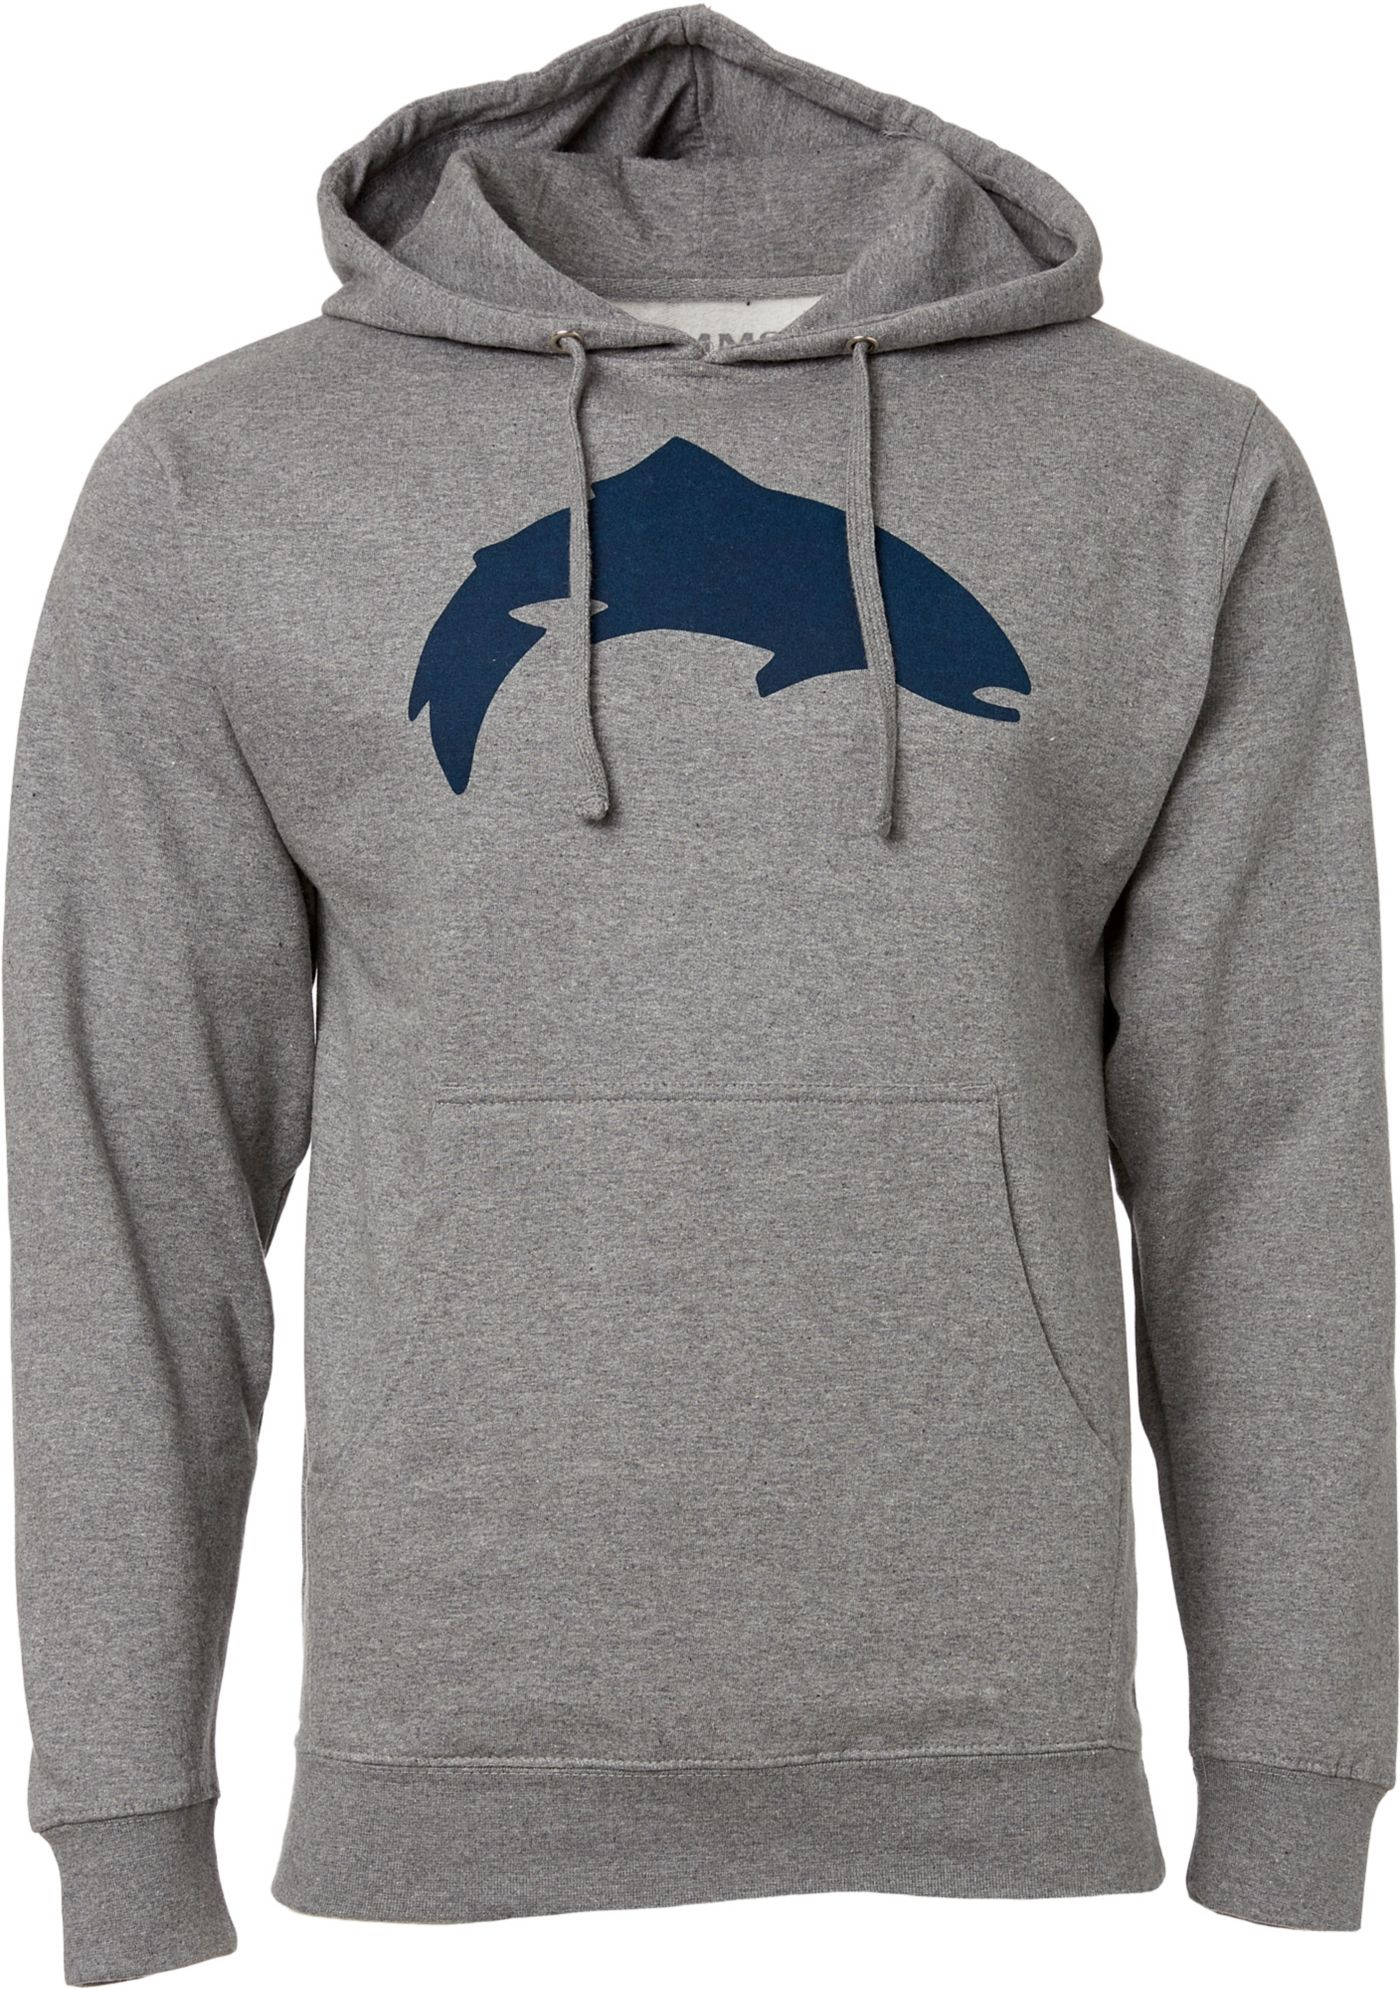 Simms Men's Trout Icon Hoodie